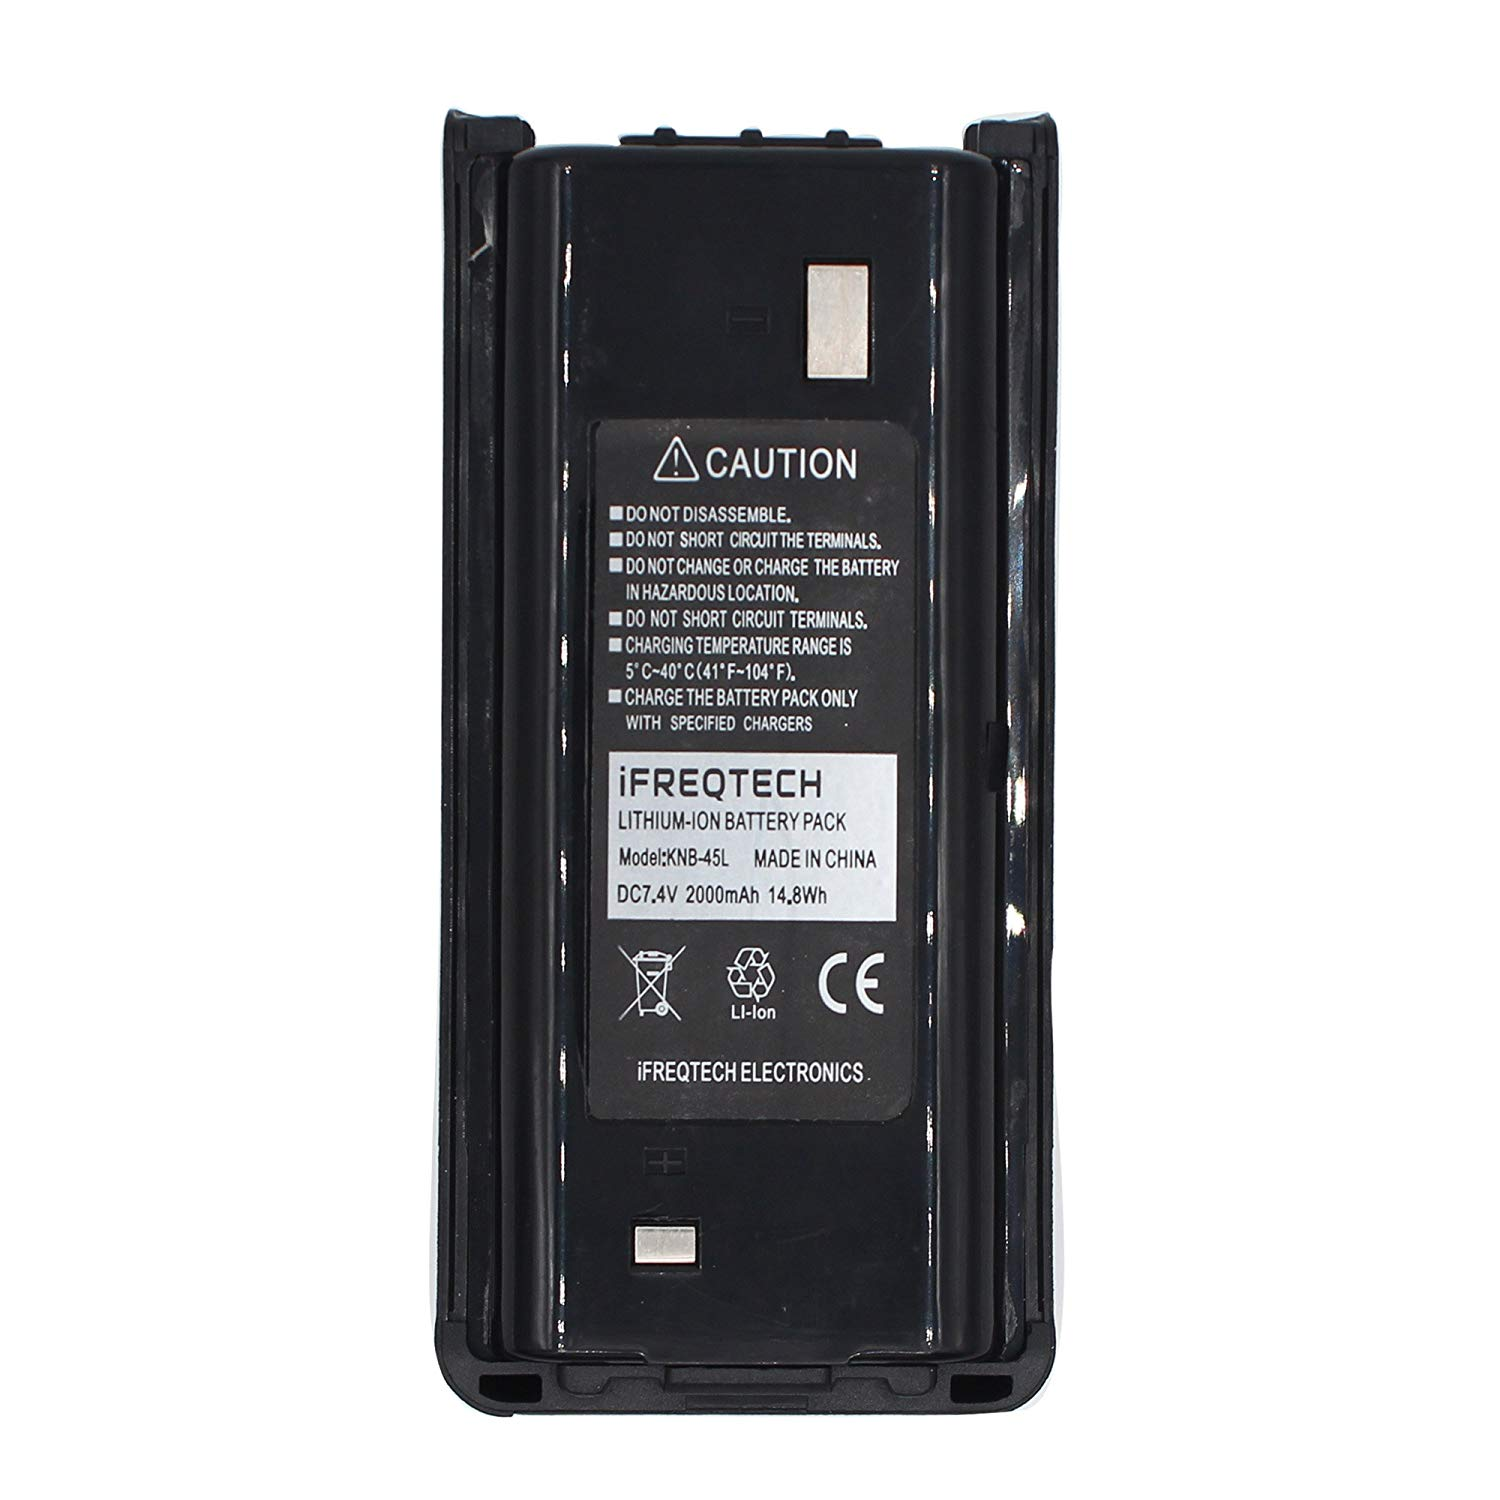 KNB-45L KNB-69L 2000mAh Li-ion Battery For KENWOOD TK-2206 TK-3206 TK-3301 TK-3401D TK-3302 TK-2312/3312 TK-D240/D340 NX-240/340